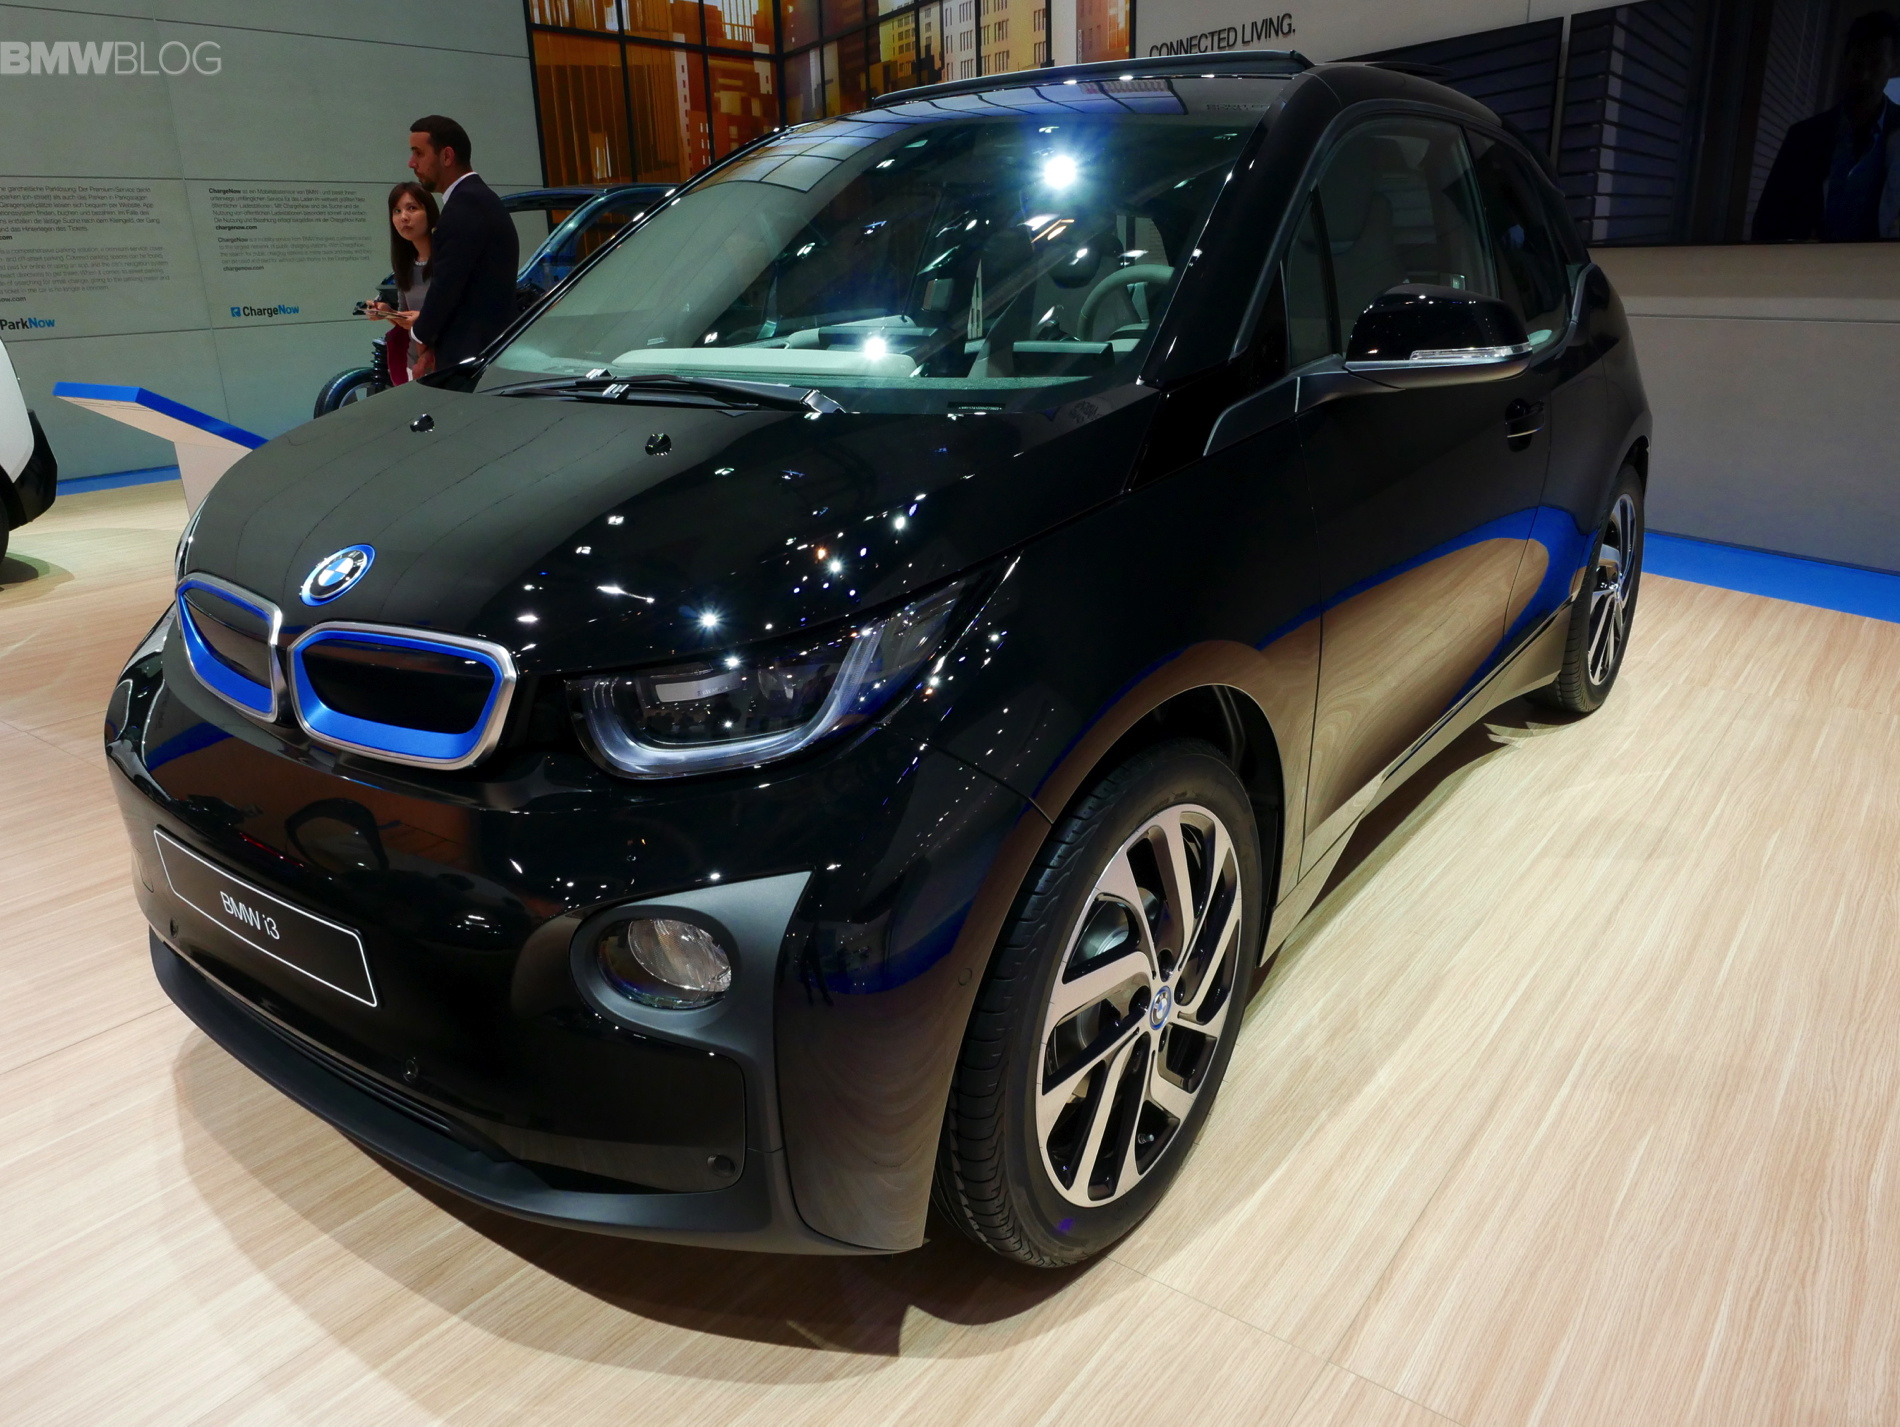 BMW i3 fluid black images 1900 x1200 01